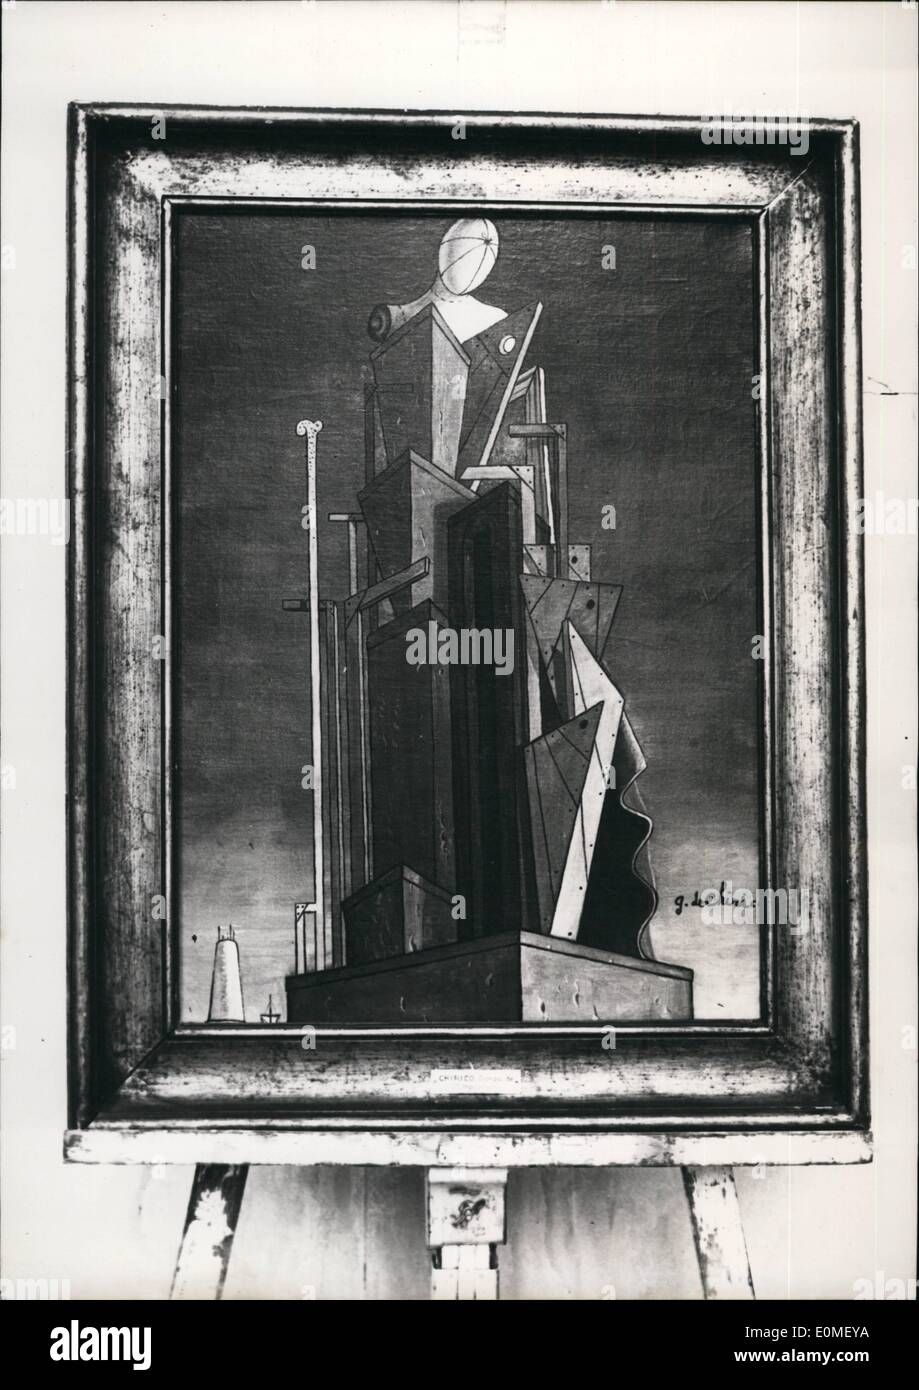 Feb. 02, 1955 - Surrealist Painter Denies Being Author Of ''Composition'': ''Composition'', Painting Attributed To Chirico, The - Stock Image